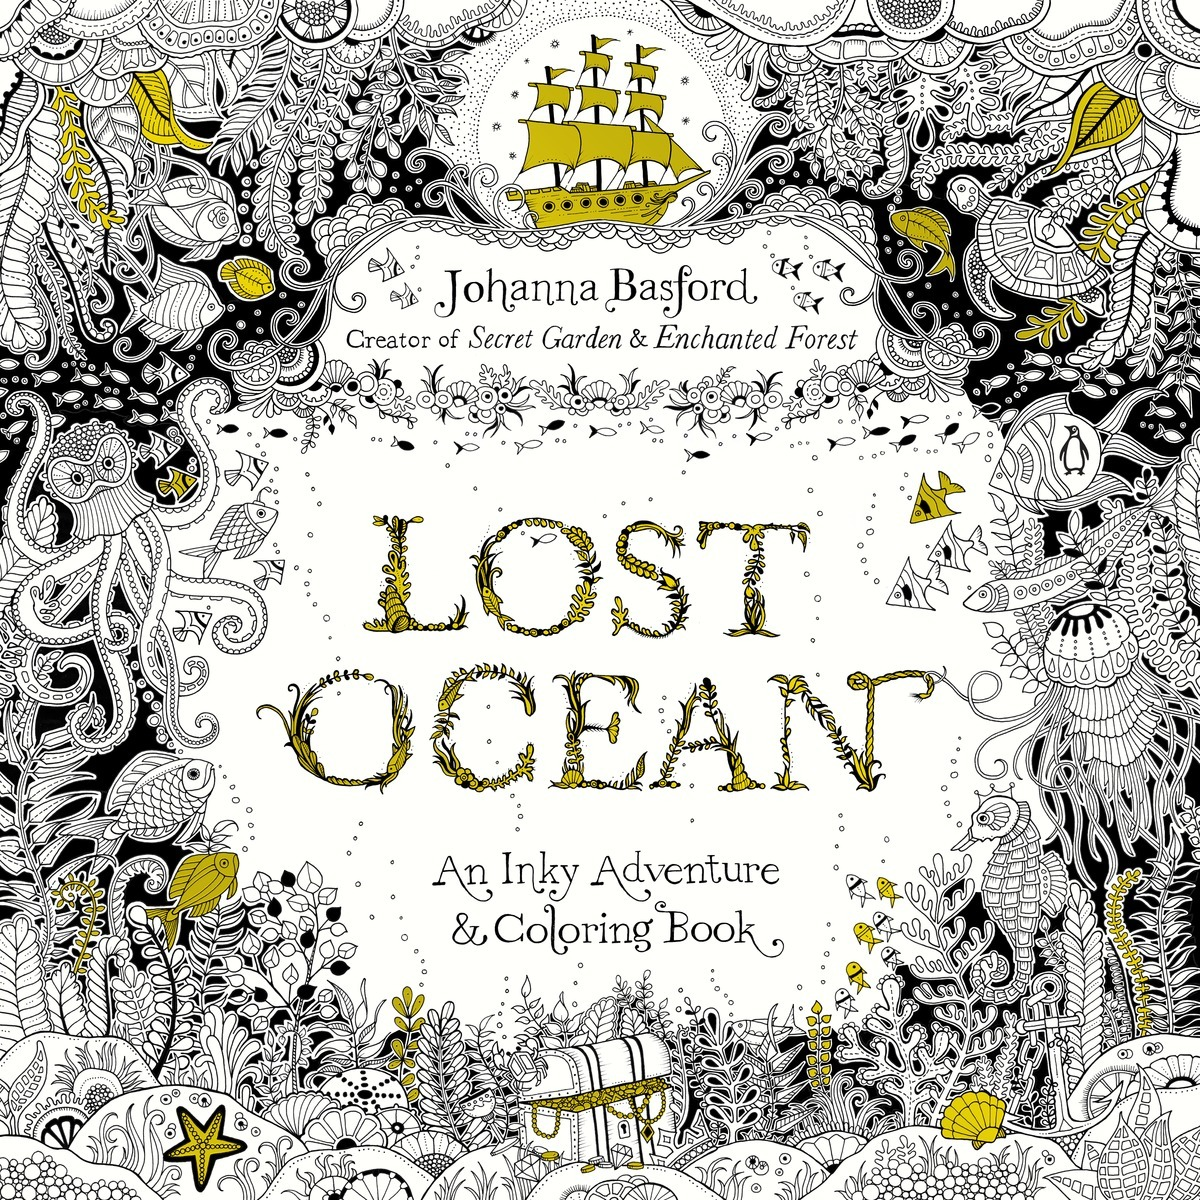 Flowers coloring book beautiful pictures from the garden of nature - Lost Ocean An Inky Adventure And Coloring Book For Adults By Johanna Basford Reviews Discussion Bookclubs Lists